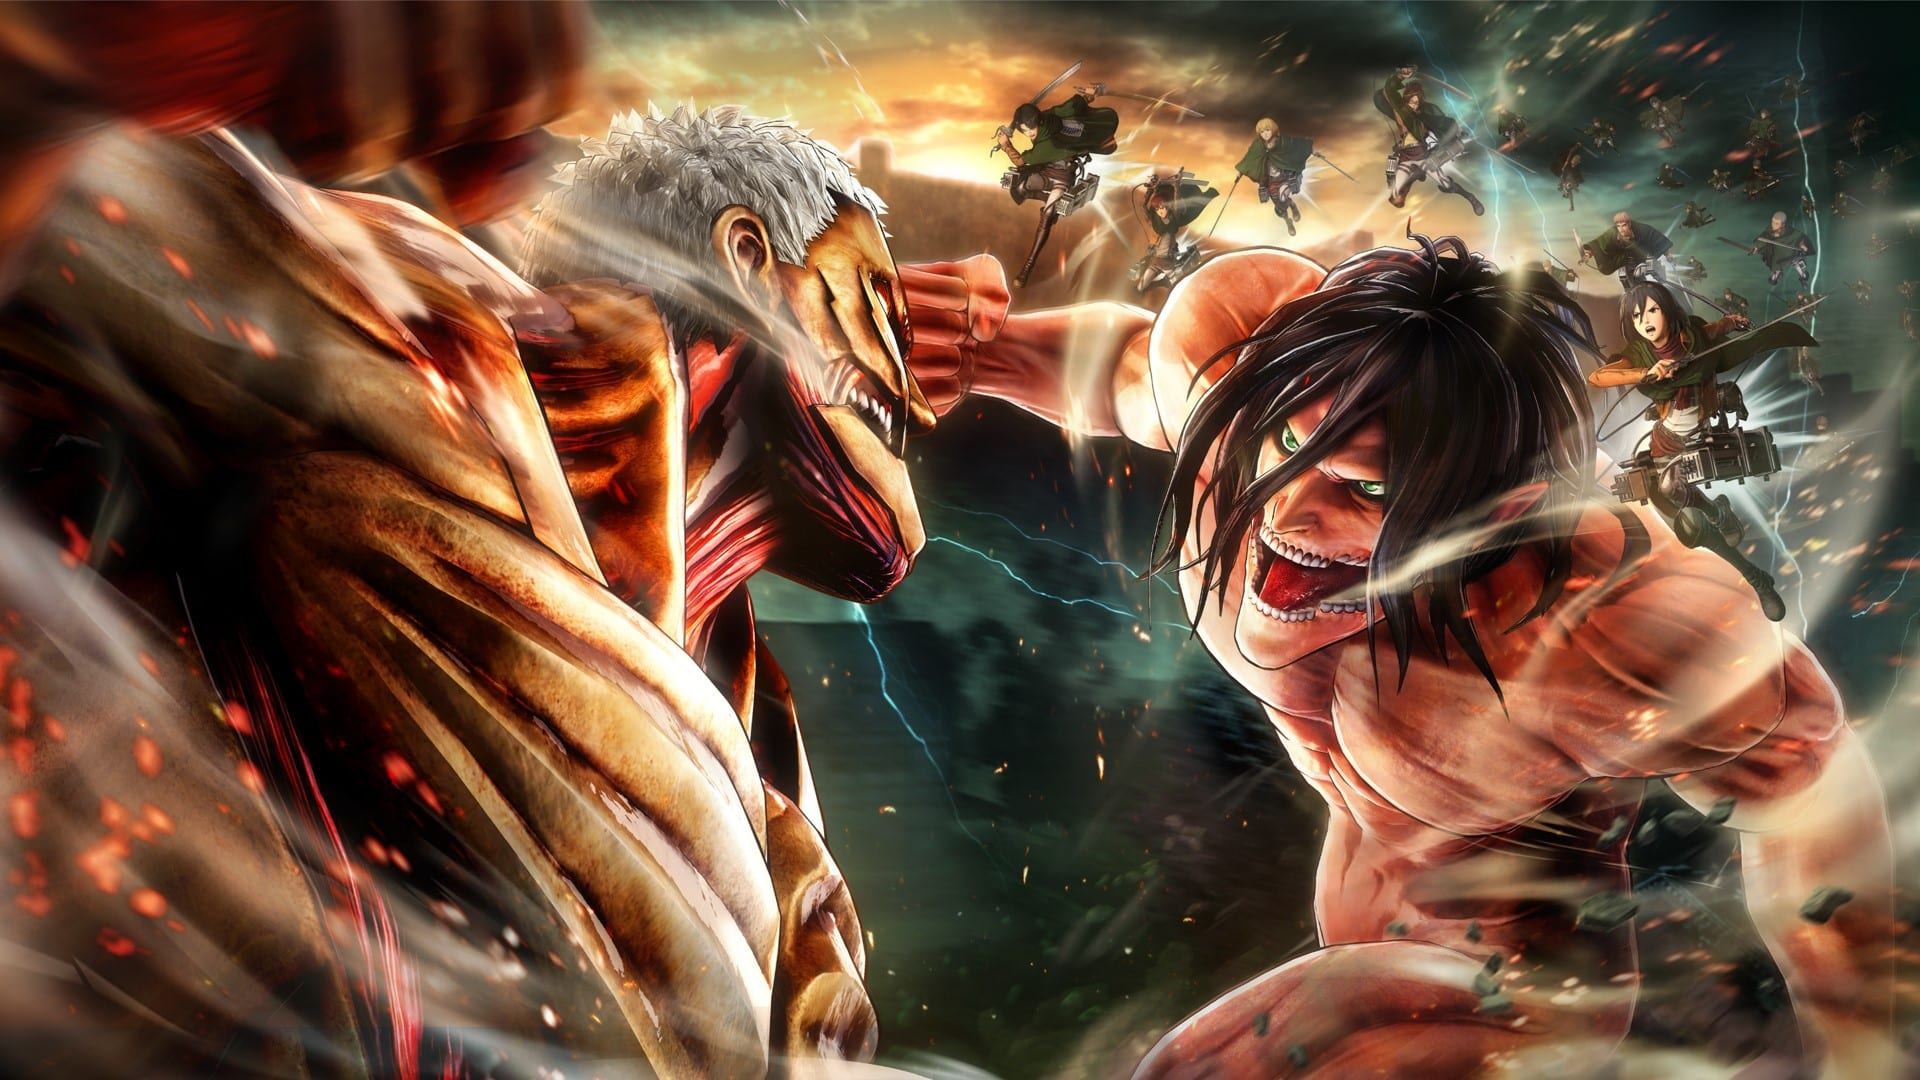 Attack On Titan 2 game announced for 2018 - GameLuster